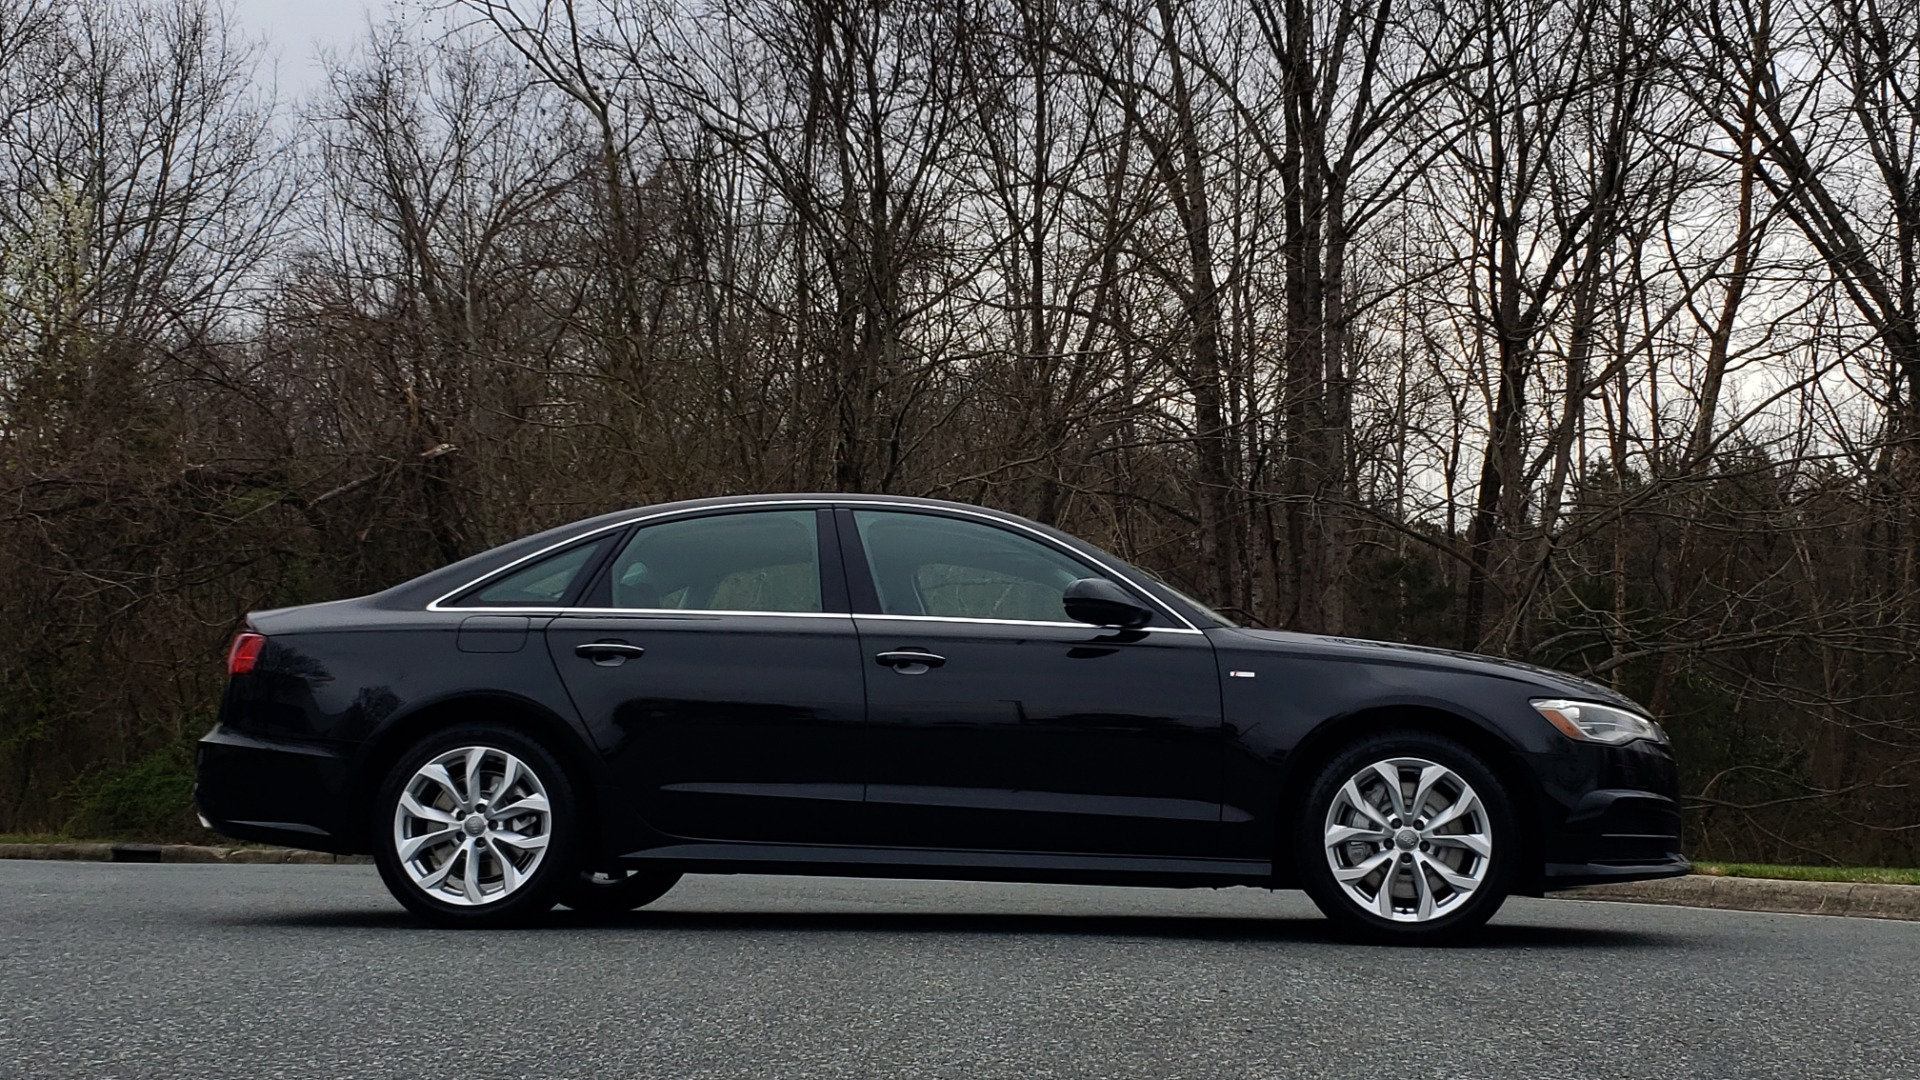 Used 2017 Audi A6 PREMIUM PLUS / NAV / SUNROOF / BOSE / CLD WTHR for sale Sold at Formula Imports in Charlotte NC 28227 5